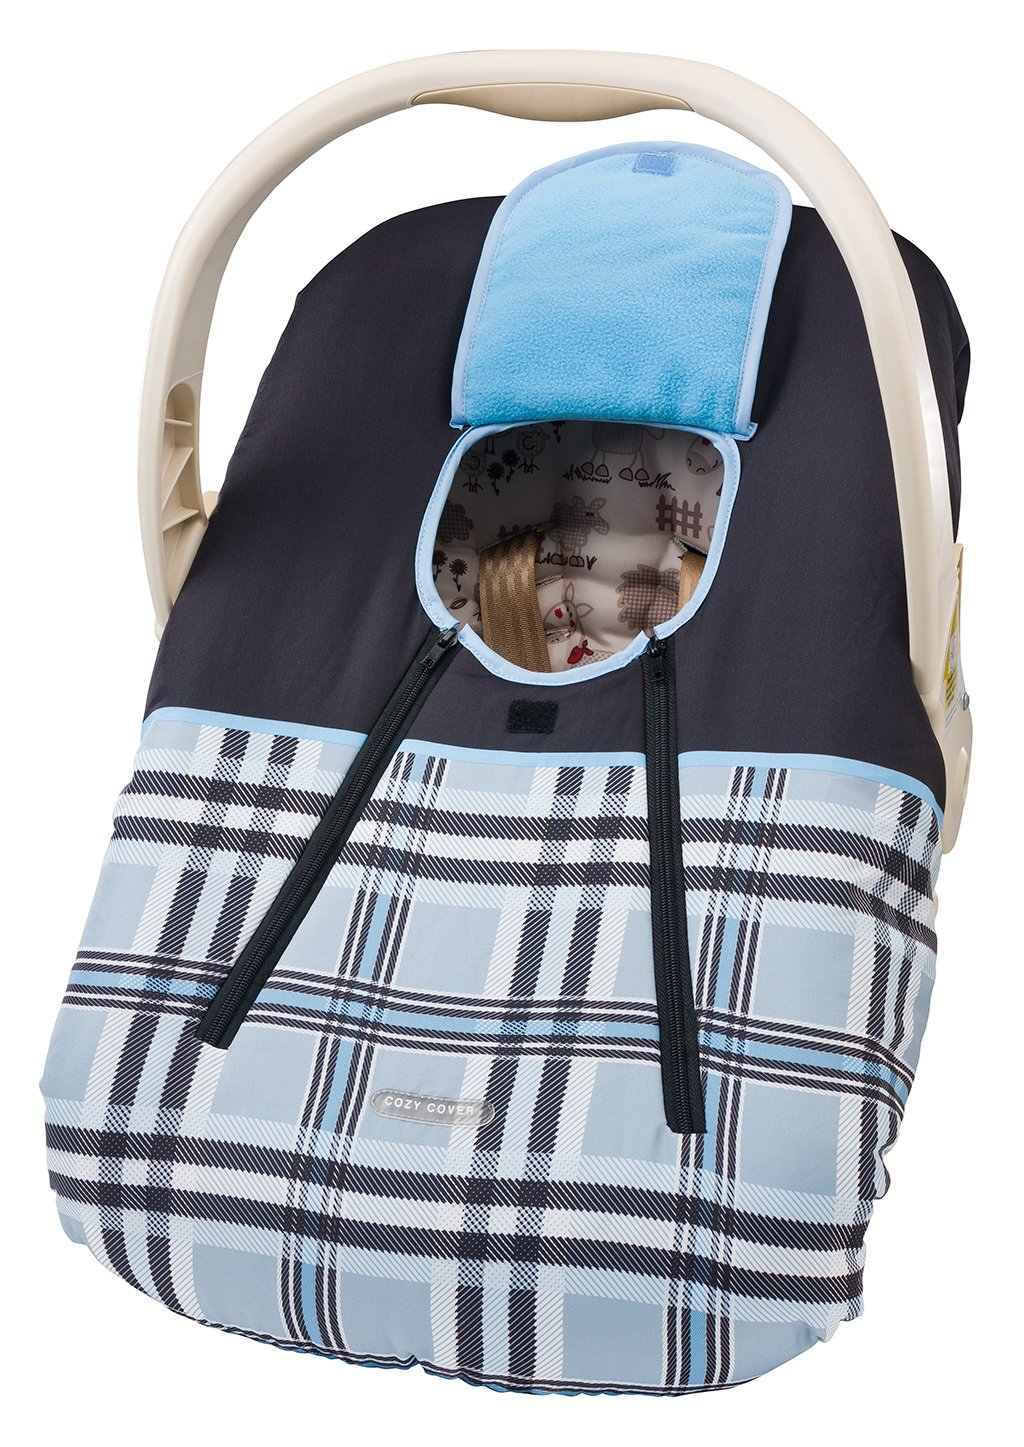 Cozy Cover Infant Car Carrier Cover (Blue): Amazon.co.uk: Baby